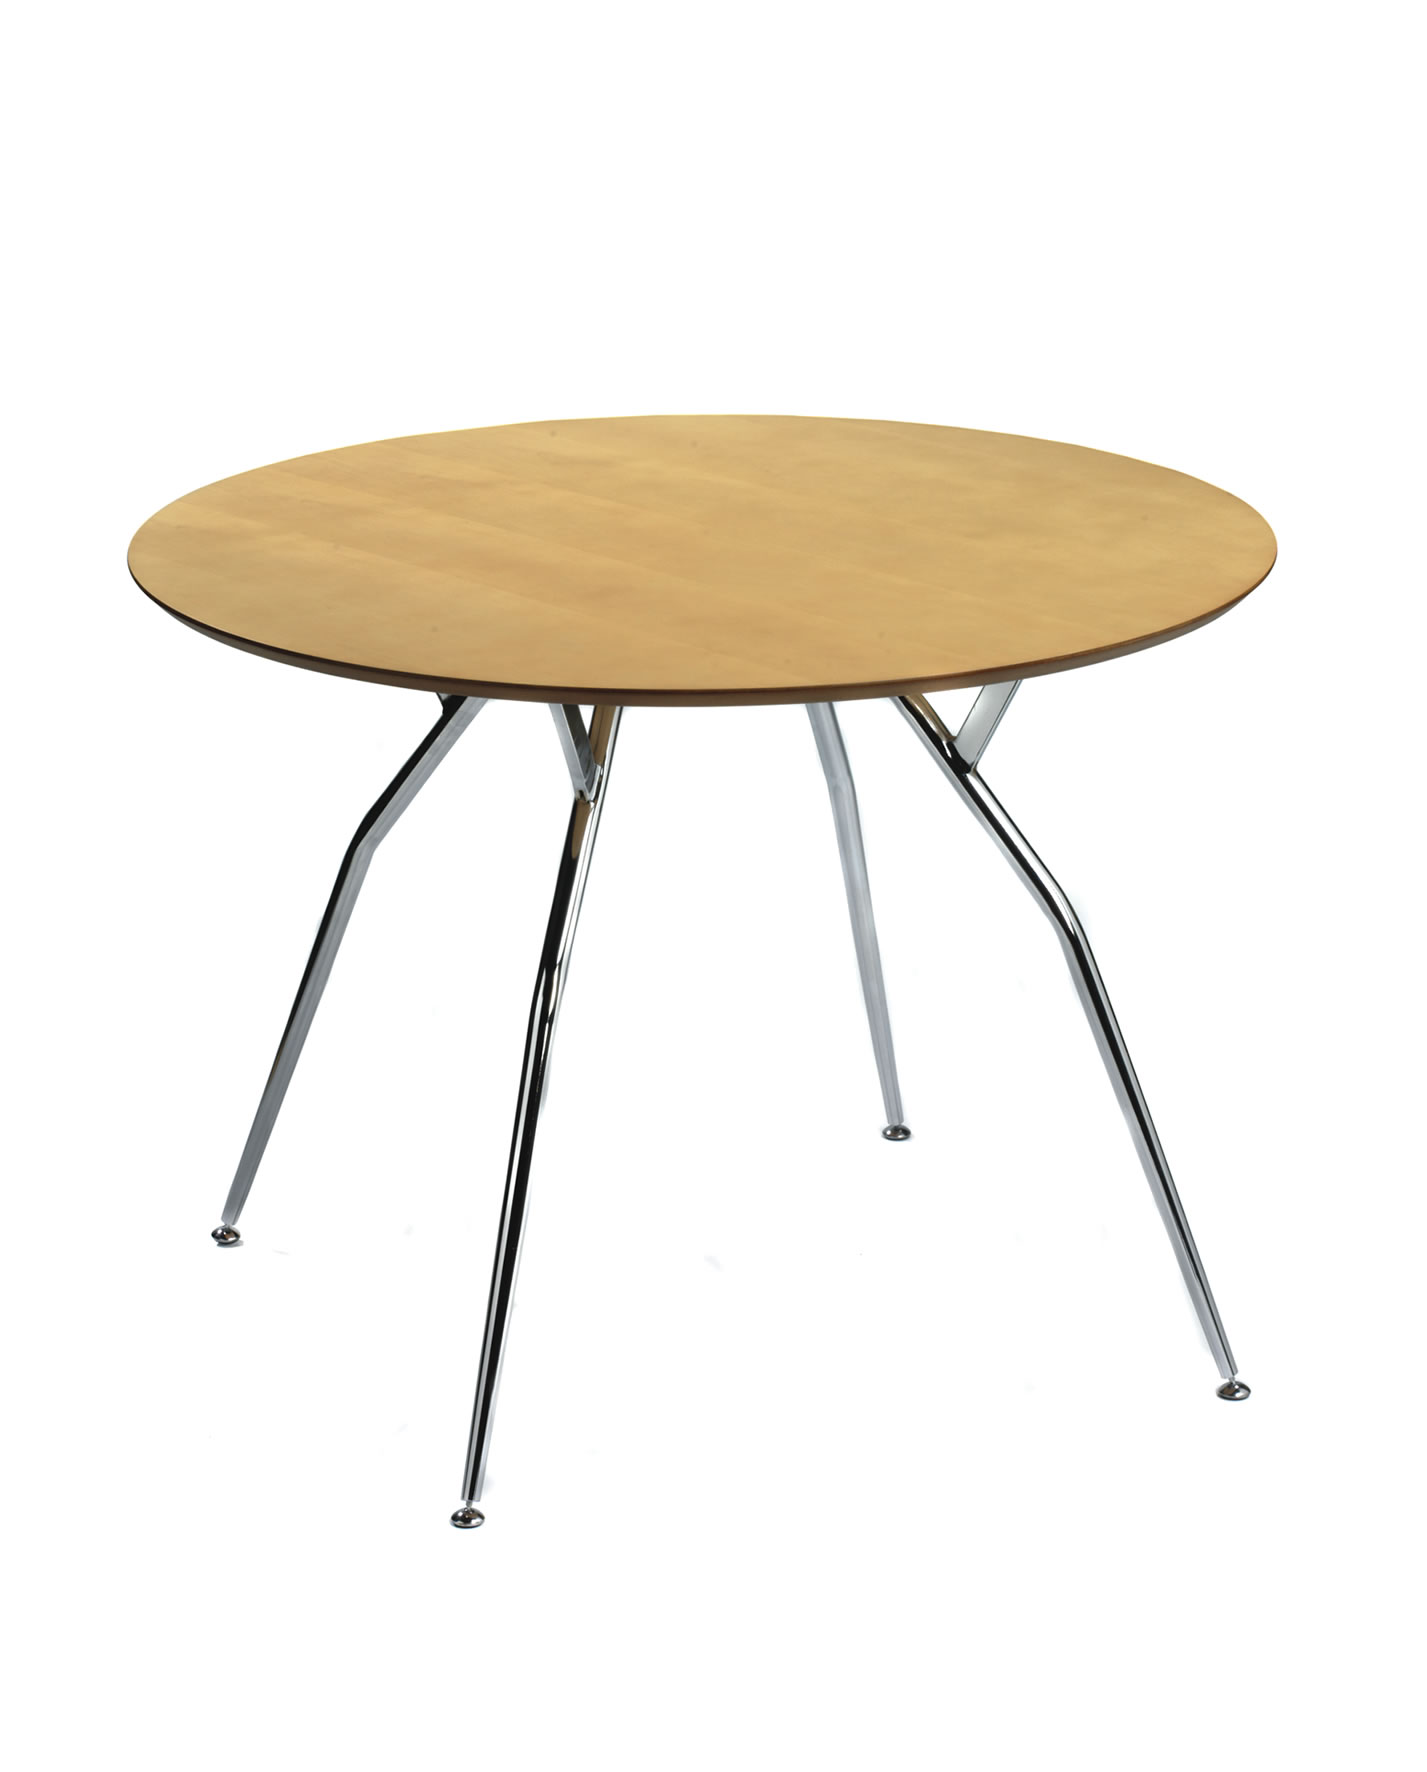 1887 CAFE LARGE ROUND TABLE WITH METAL LEGS